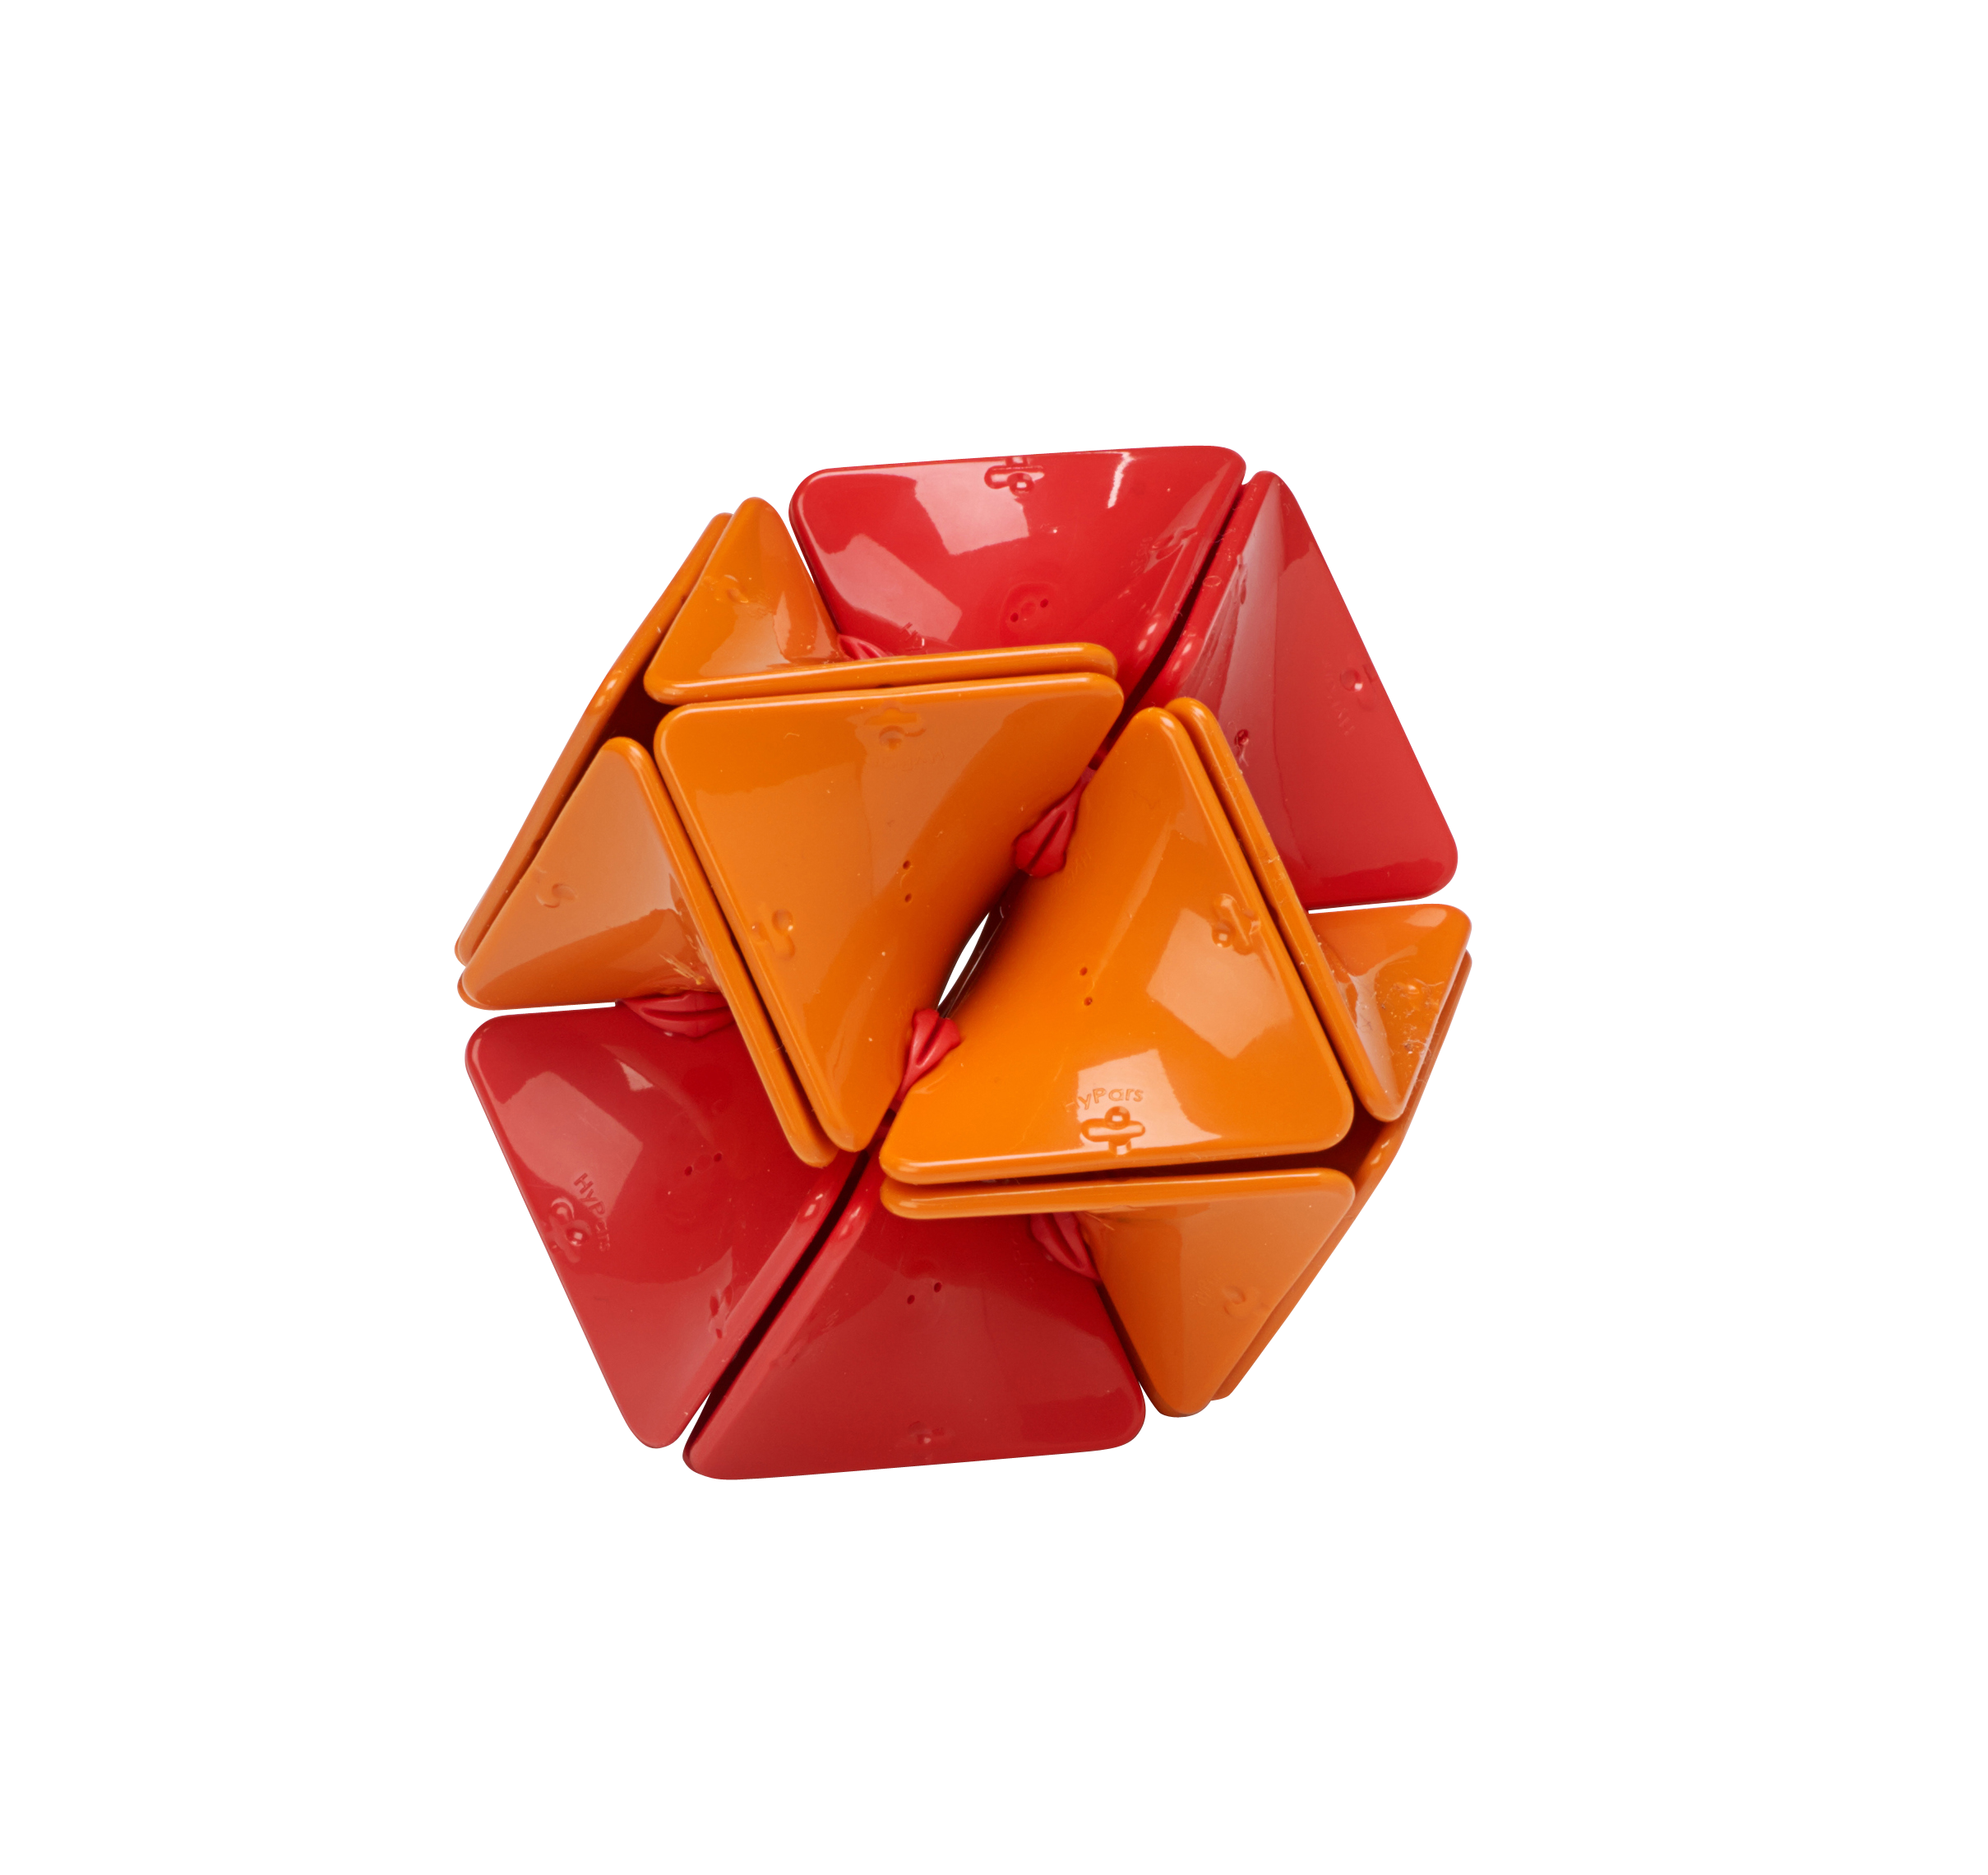 Rhombic Dodecahedron -